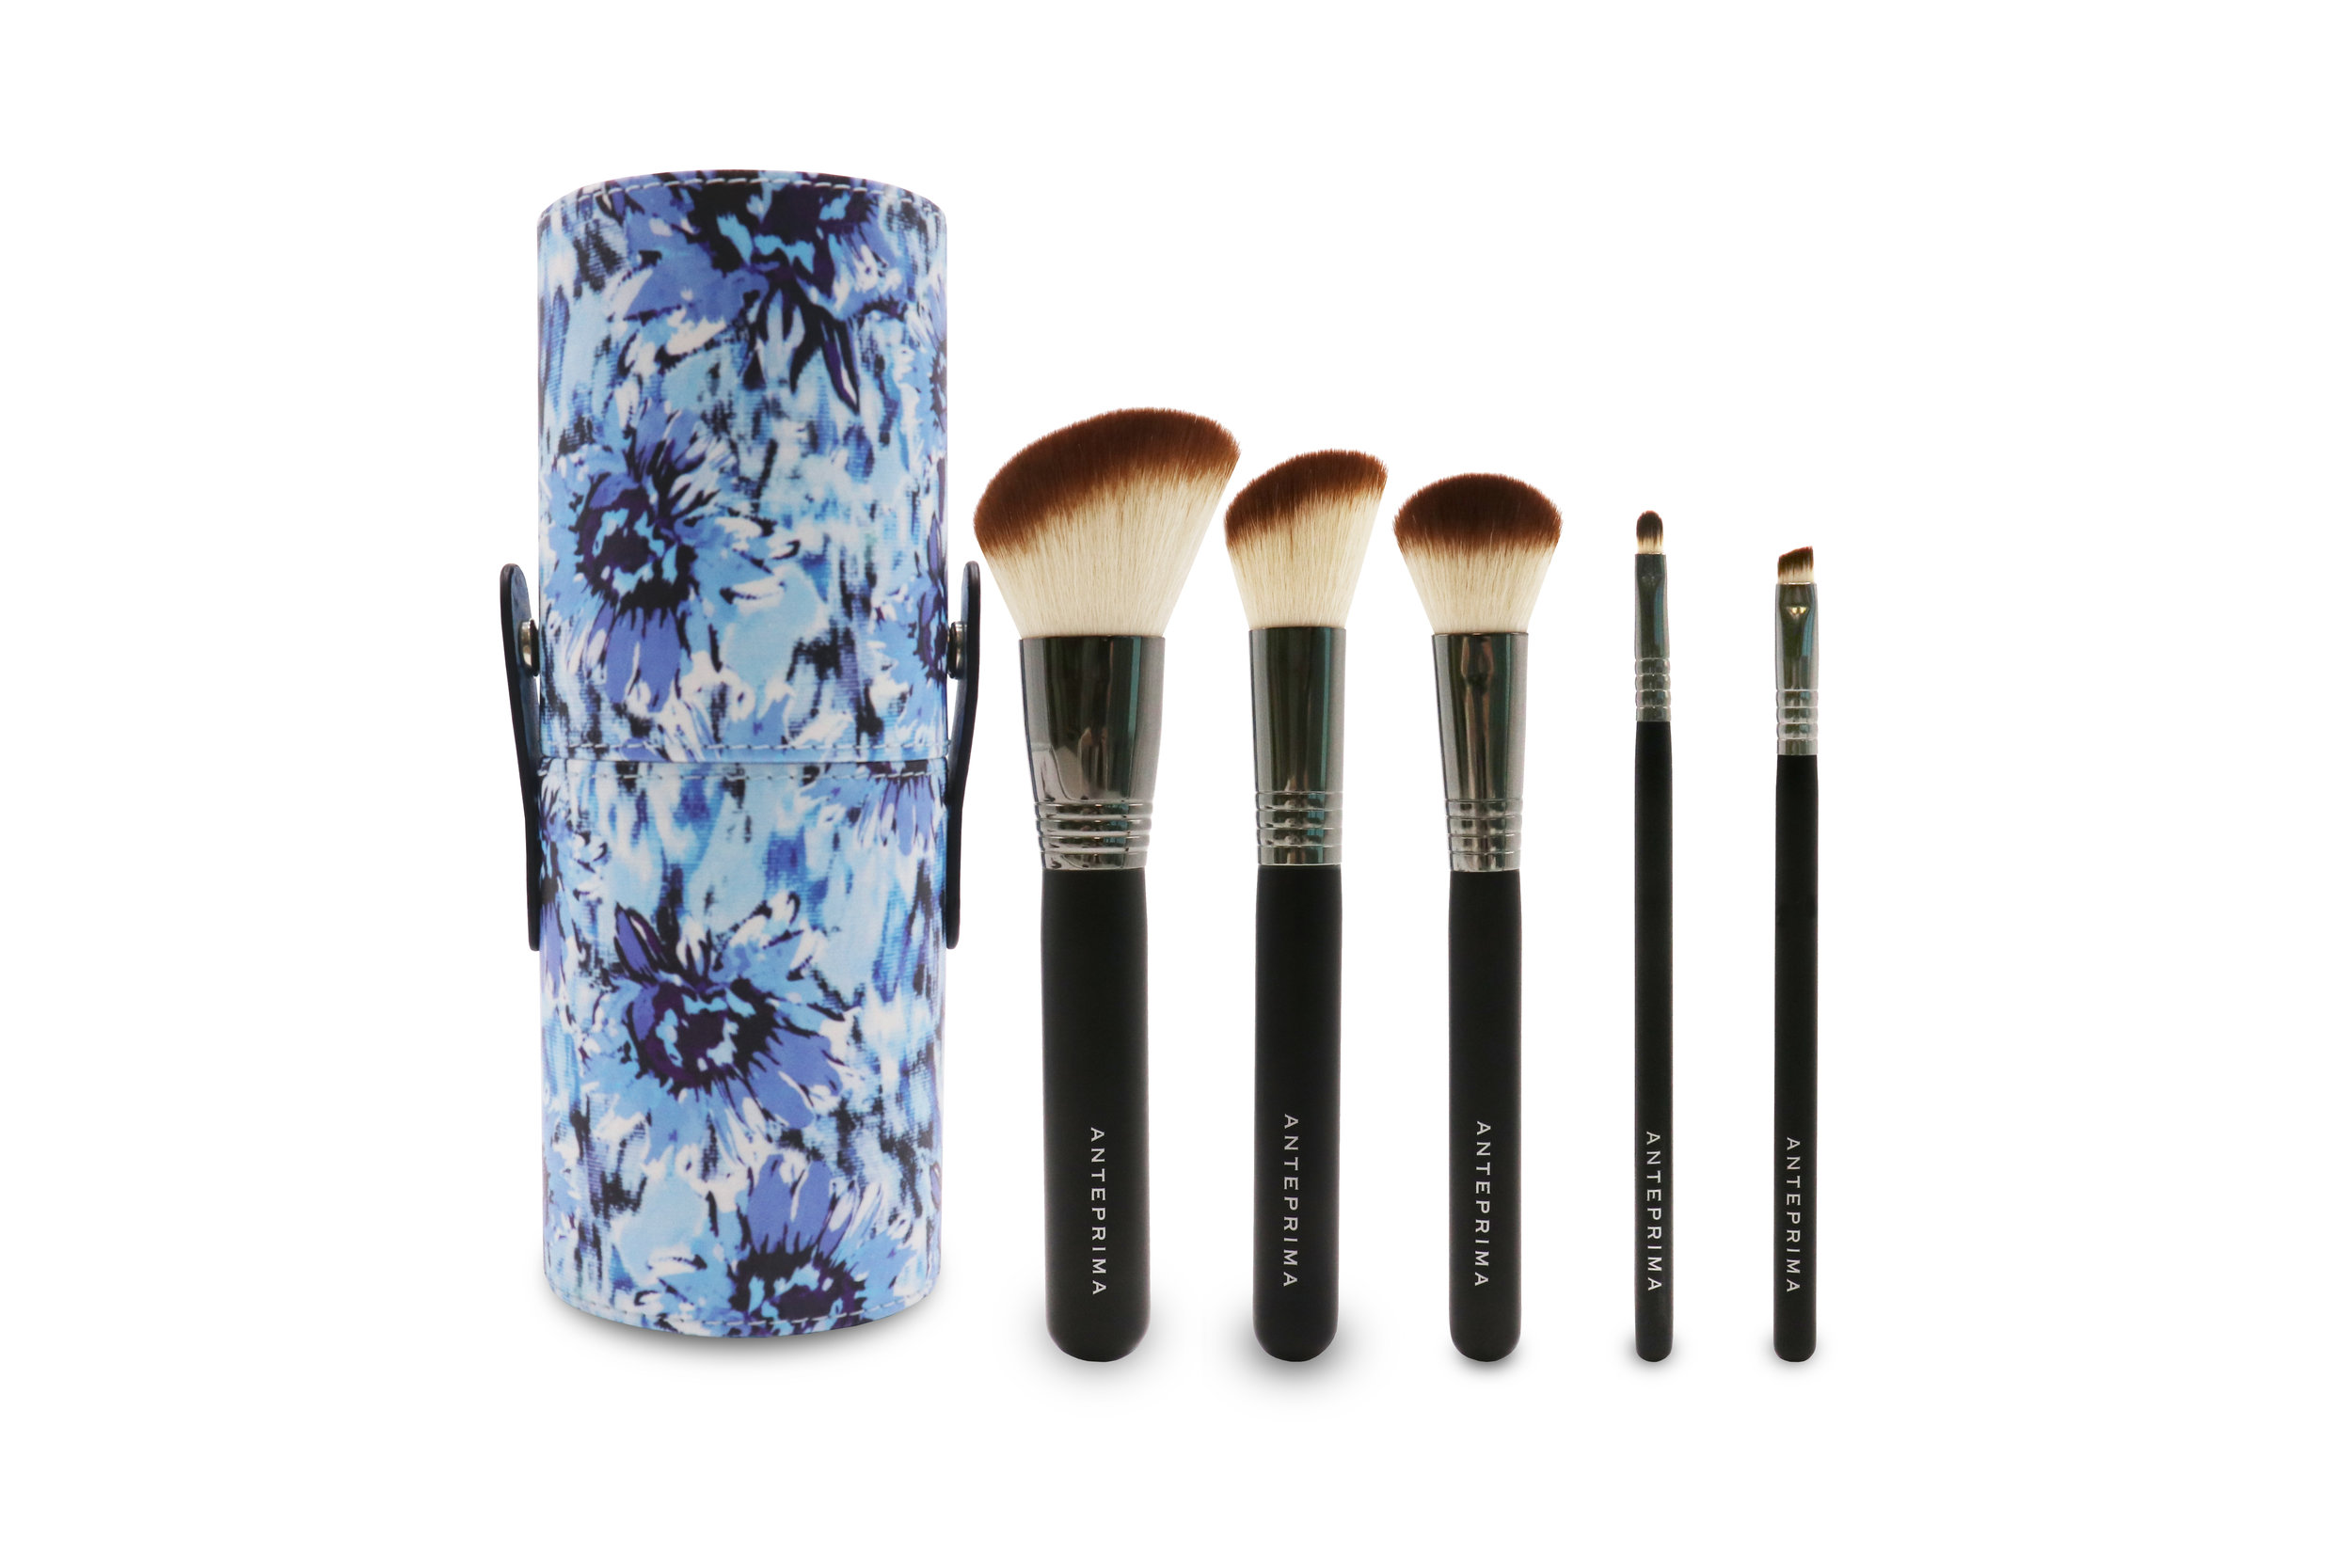 SS19_APM_VIP Gift_Cosmetic Brush Set_Official Image 01.jpg